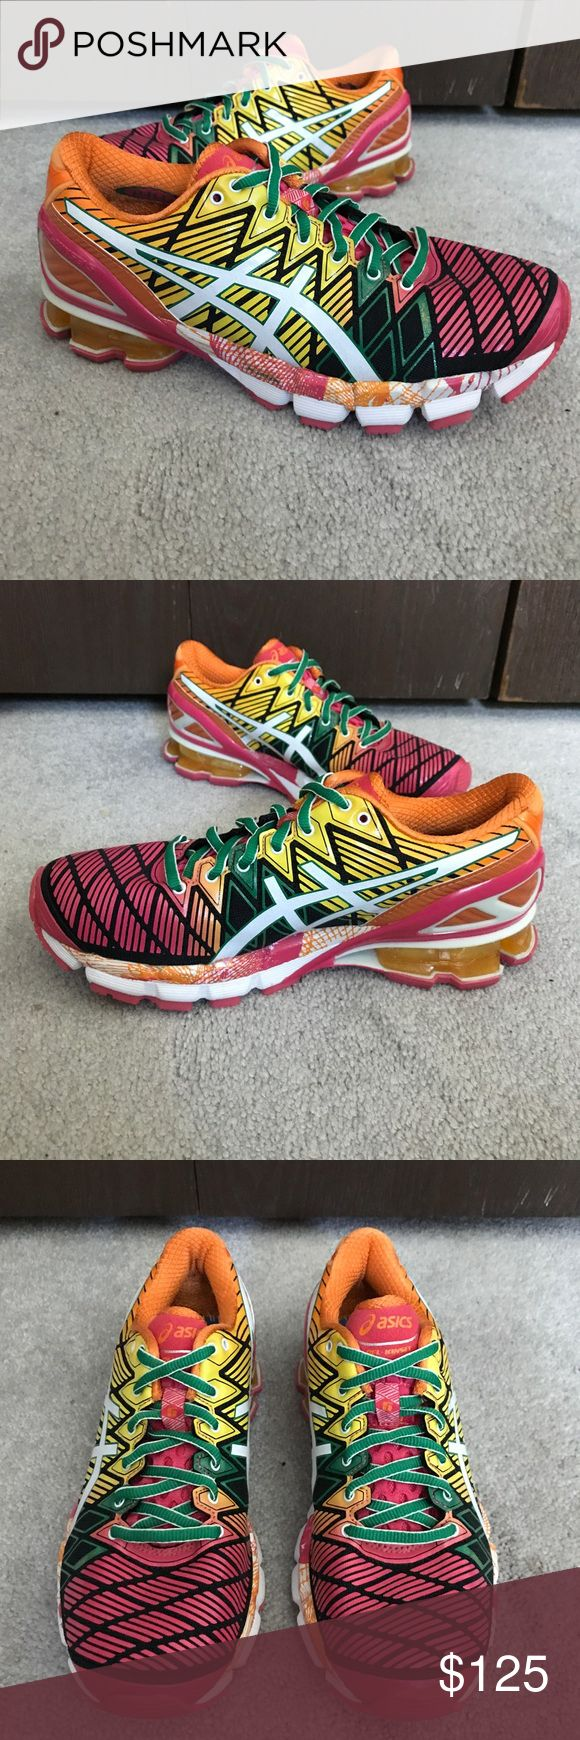 NEW Women's Asics Gel-Kinsei 5 Shoes are missing the insoles, but have never been worn. Asics Shoes Athletic Shoes